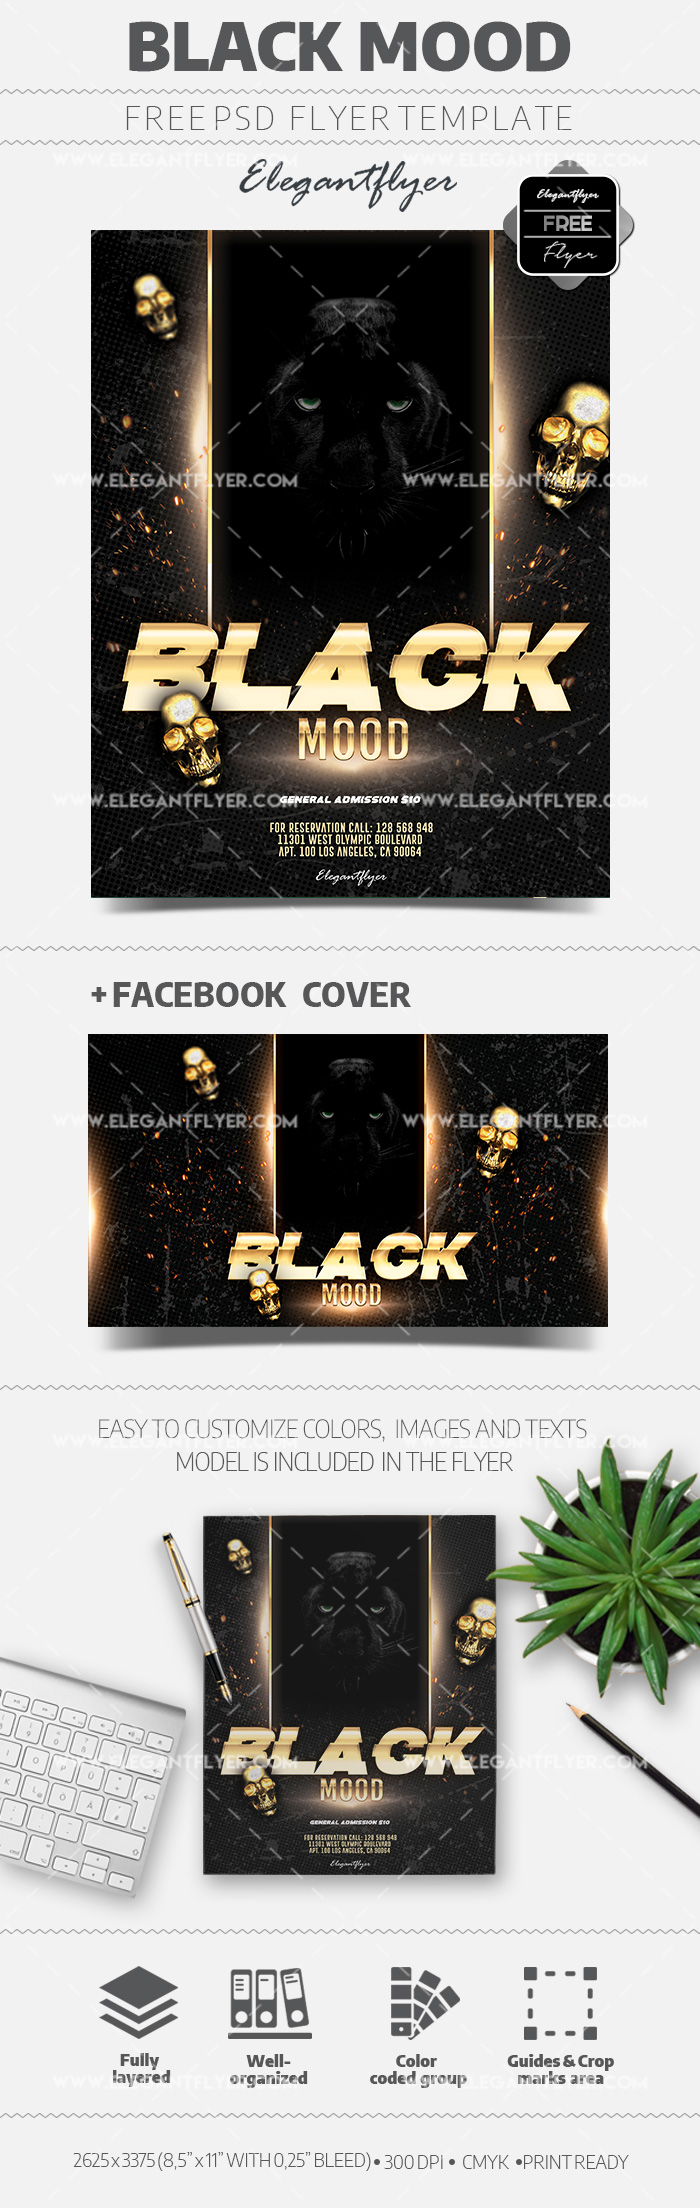 Black Mood Party – Free PSD Flyer Template